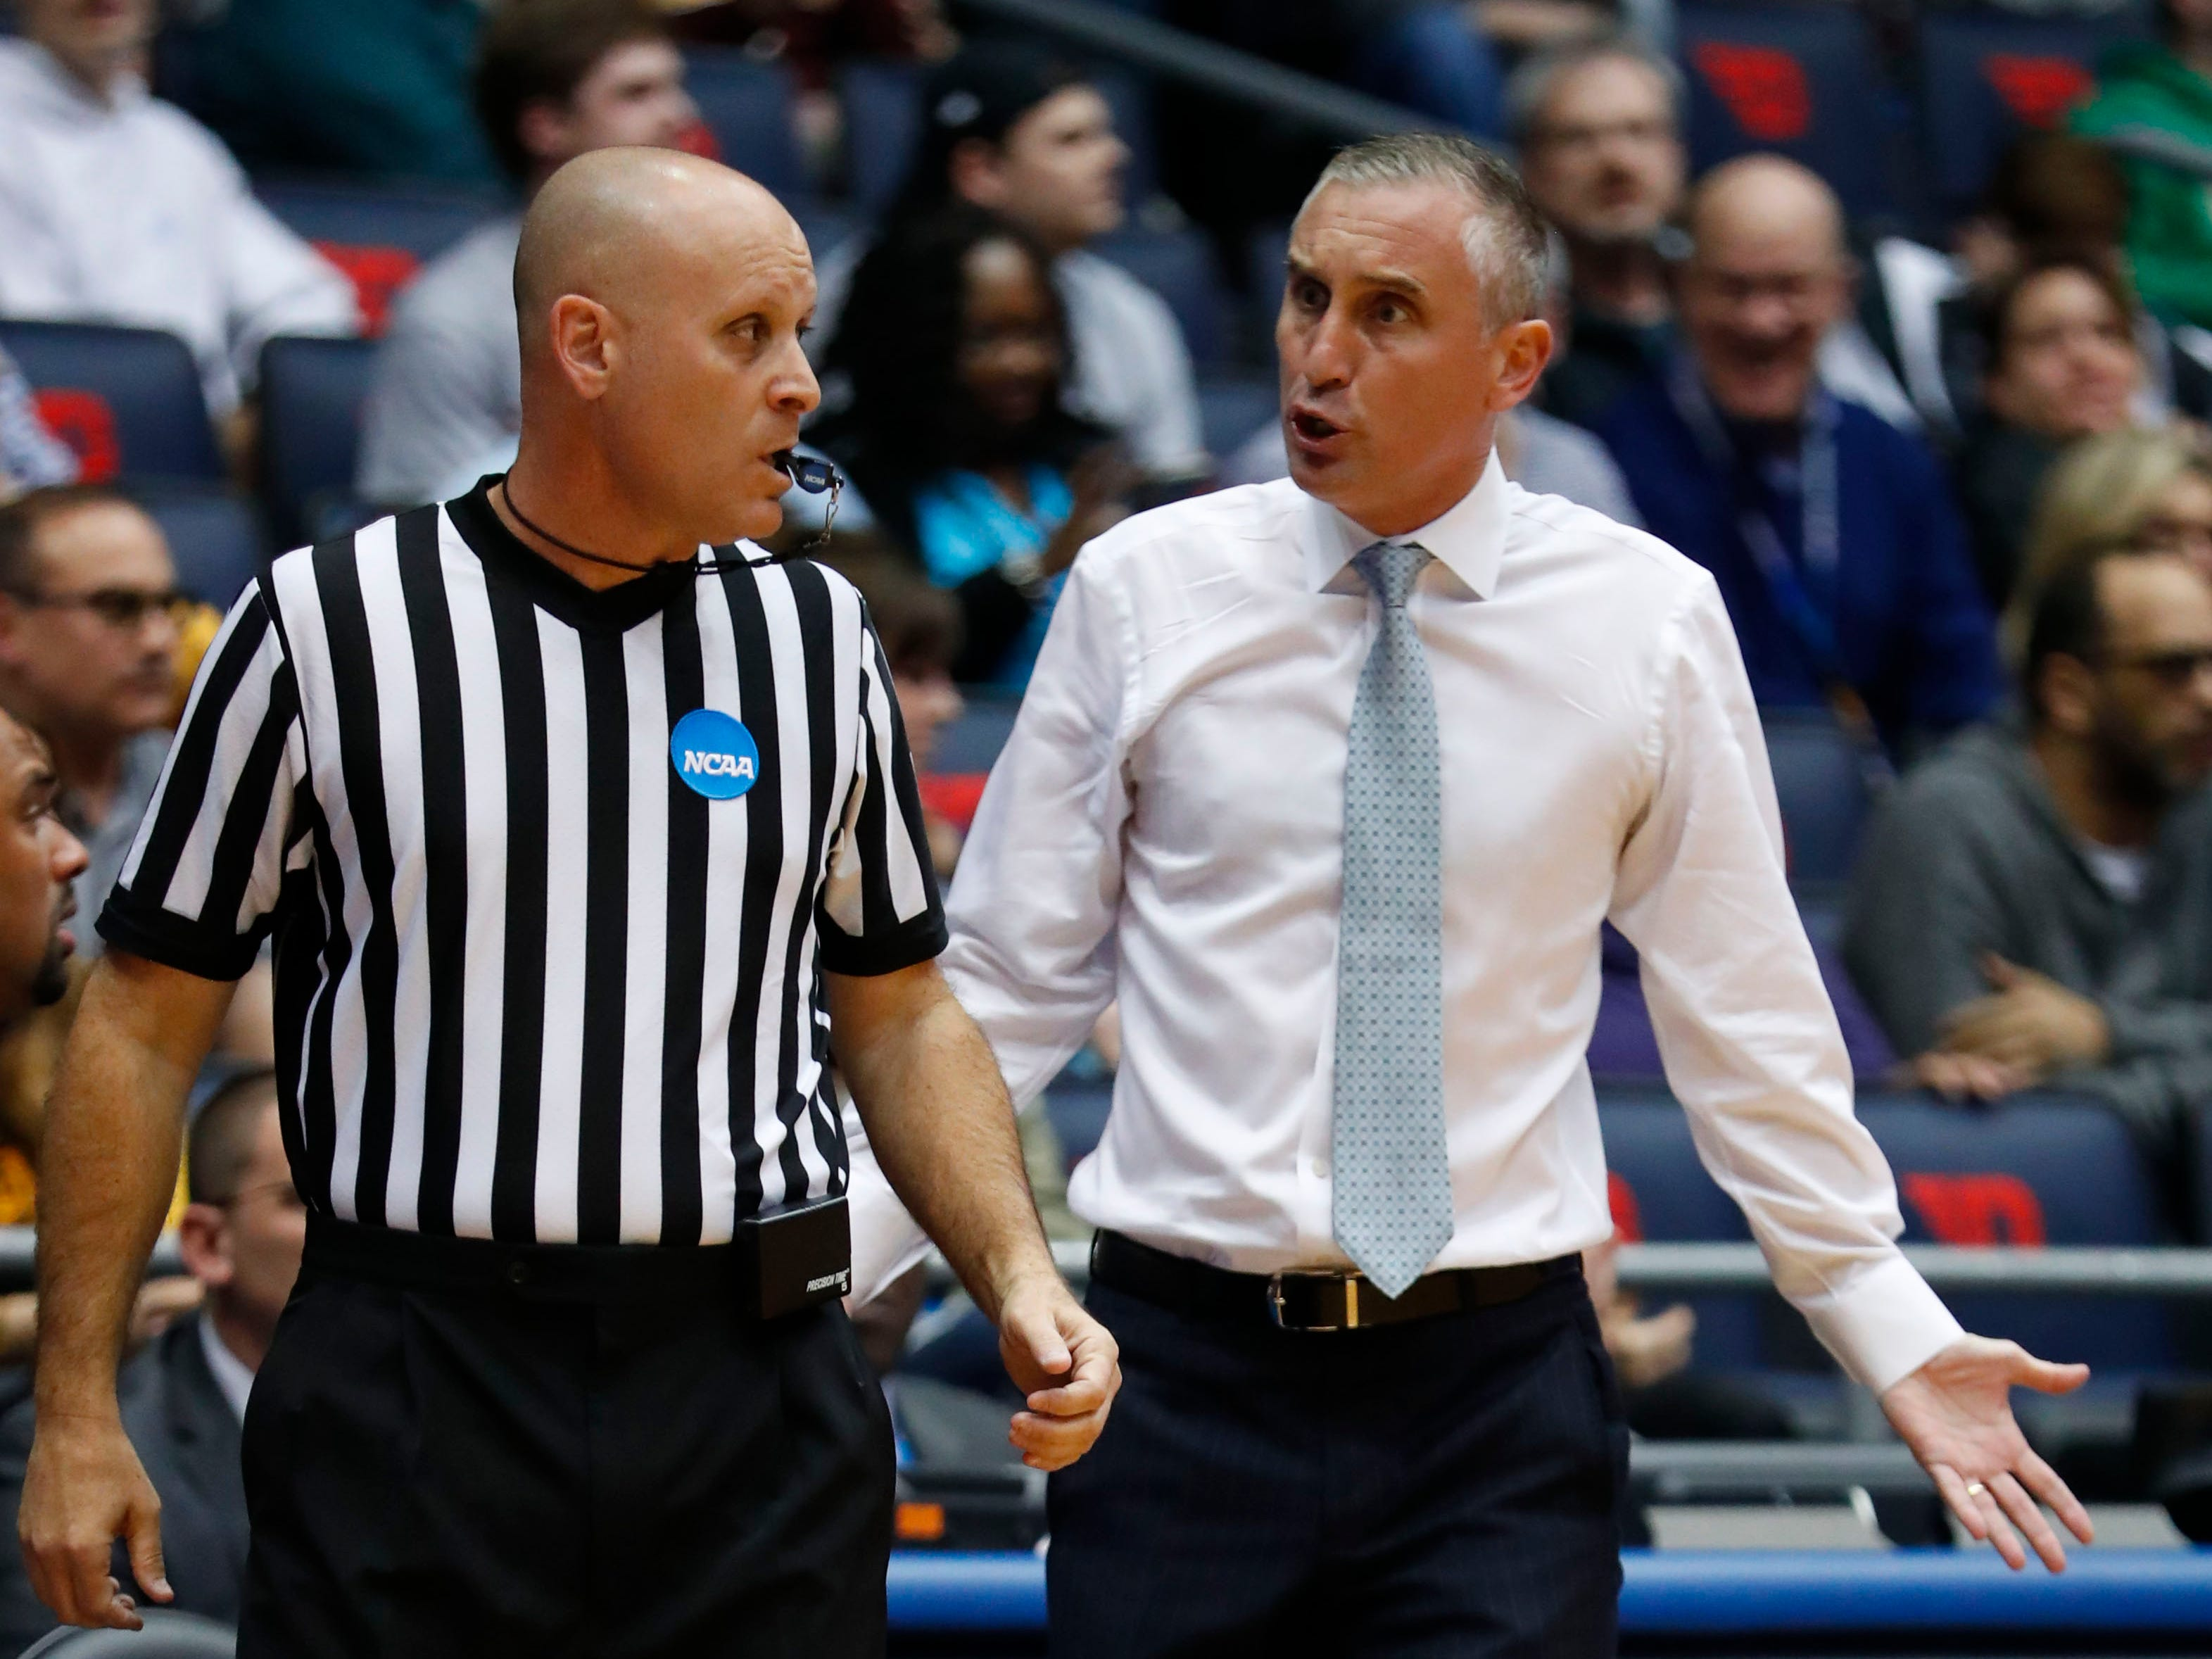 Mar 20, 2019; Dayton, OH, USA; Arizona State Sun Devils head coach Bobby Hurley talks to an official in the first half against the St. John's Red Storm in the First Four of the 2019 NCAA Tournament at Dayton Arena. Mandatory Credit: Rick Osentoski-USA TODAY Sports